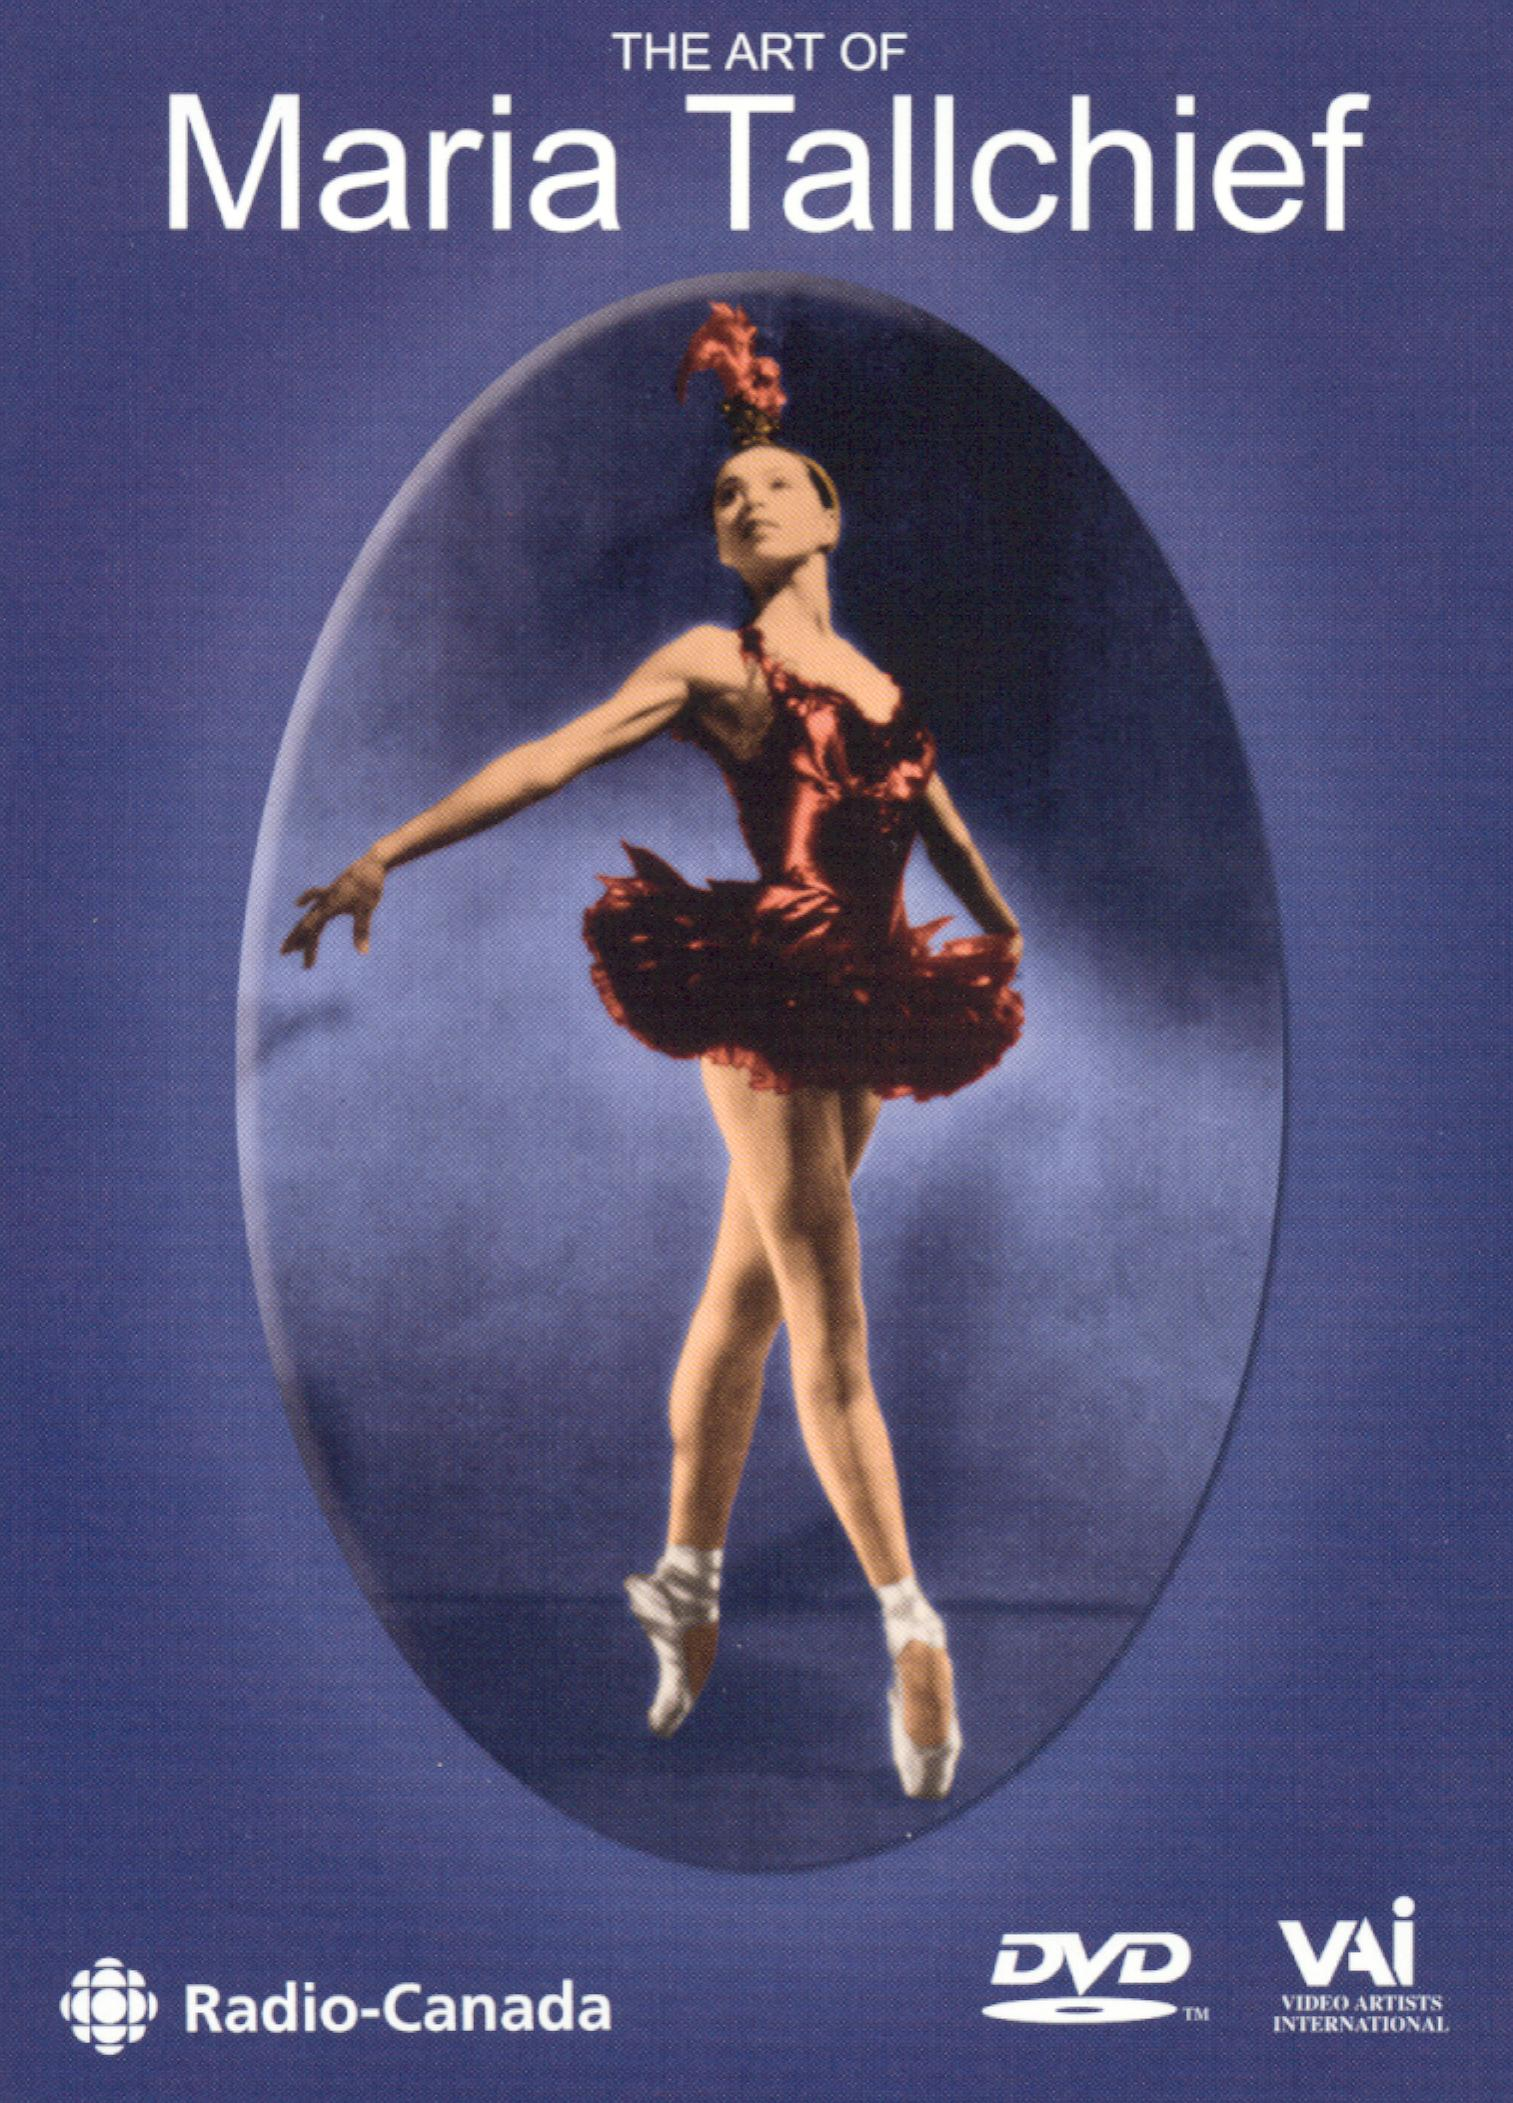 The Art of Maria Tallchief